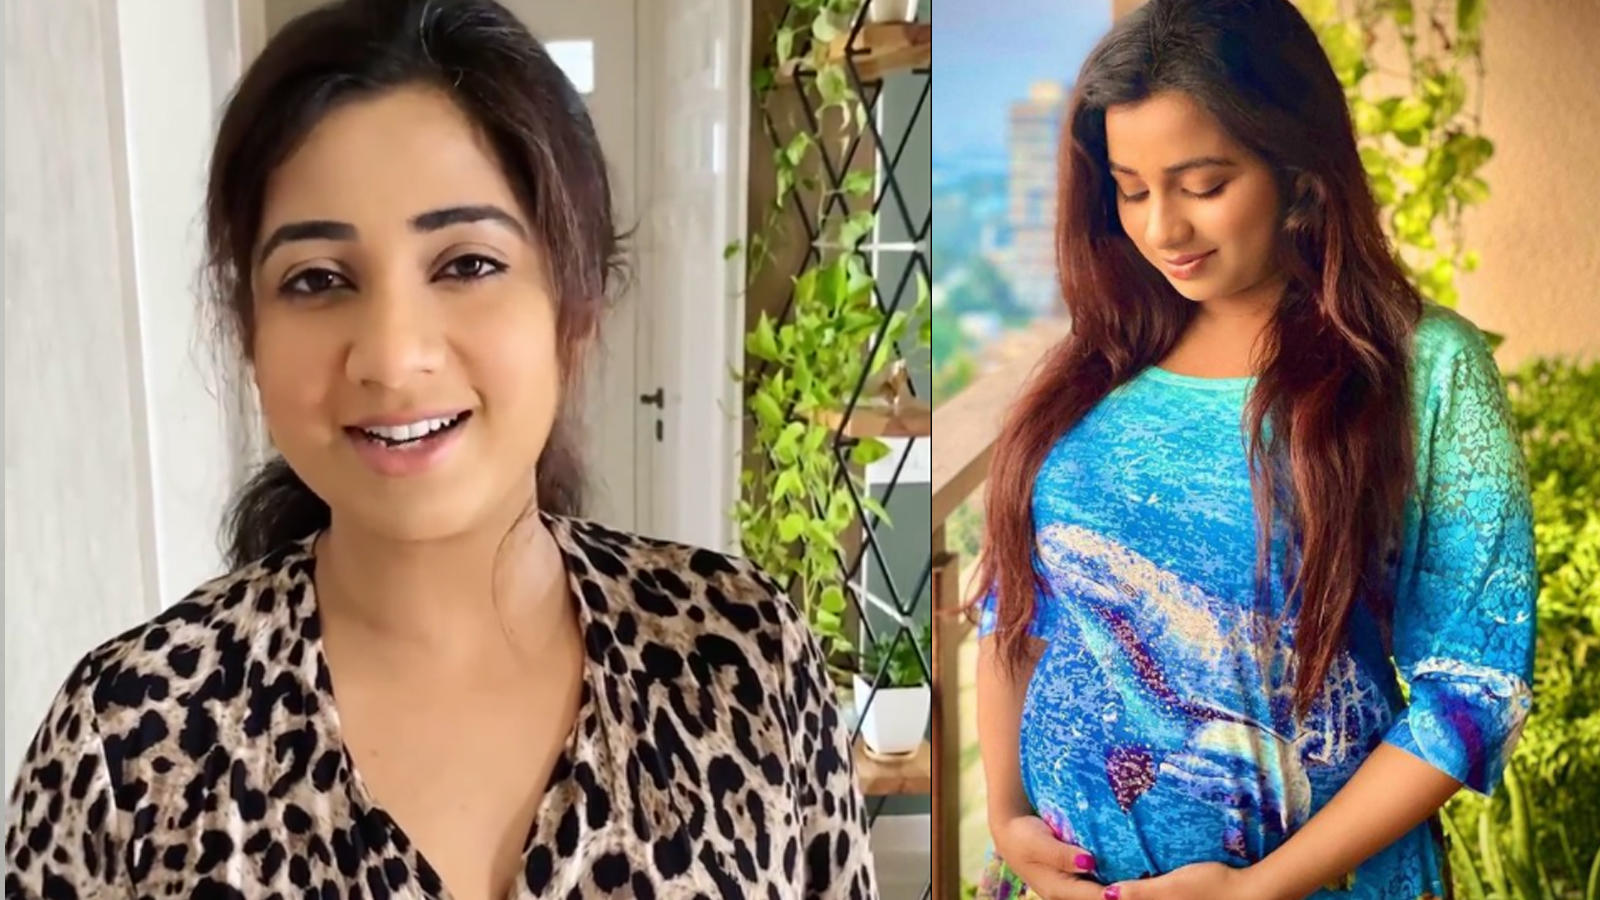 preggers-shreya-ghoshal-asks-fans-to-suggest-names-for-her-baby-calls-motherhood-the-most-precious-gift